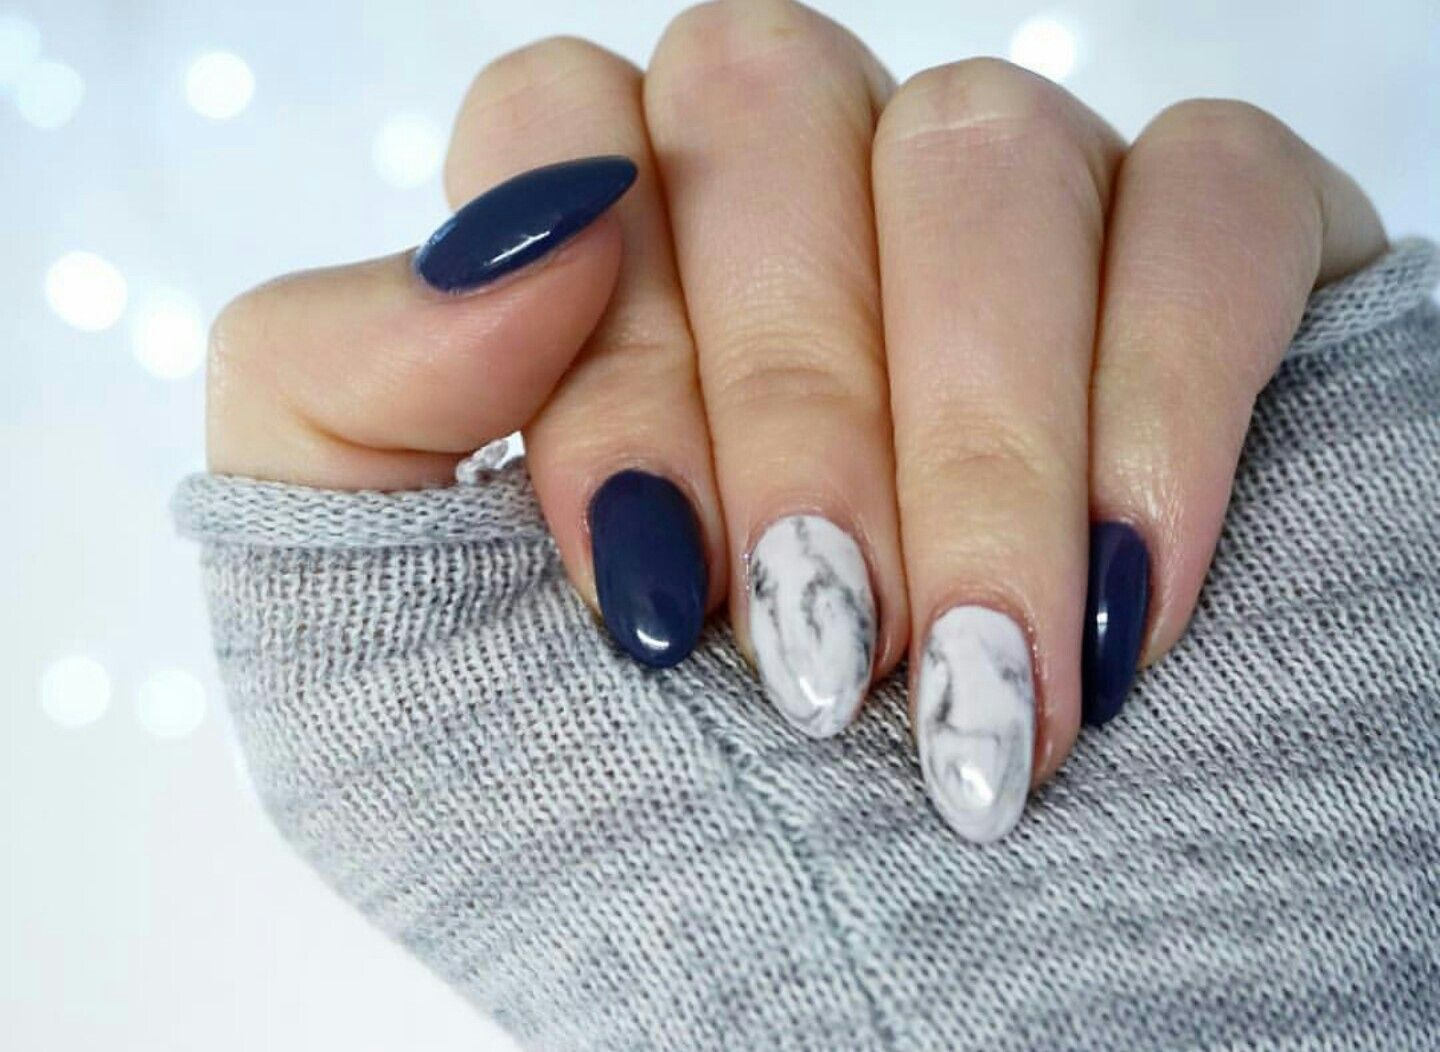 Dark blue + marble | Nails | Pinterest | Dark blue, Marbles and Dark